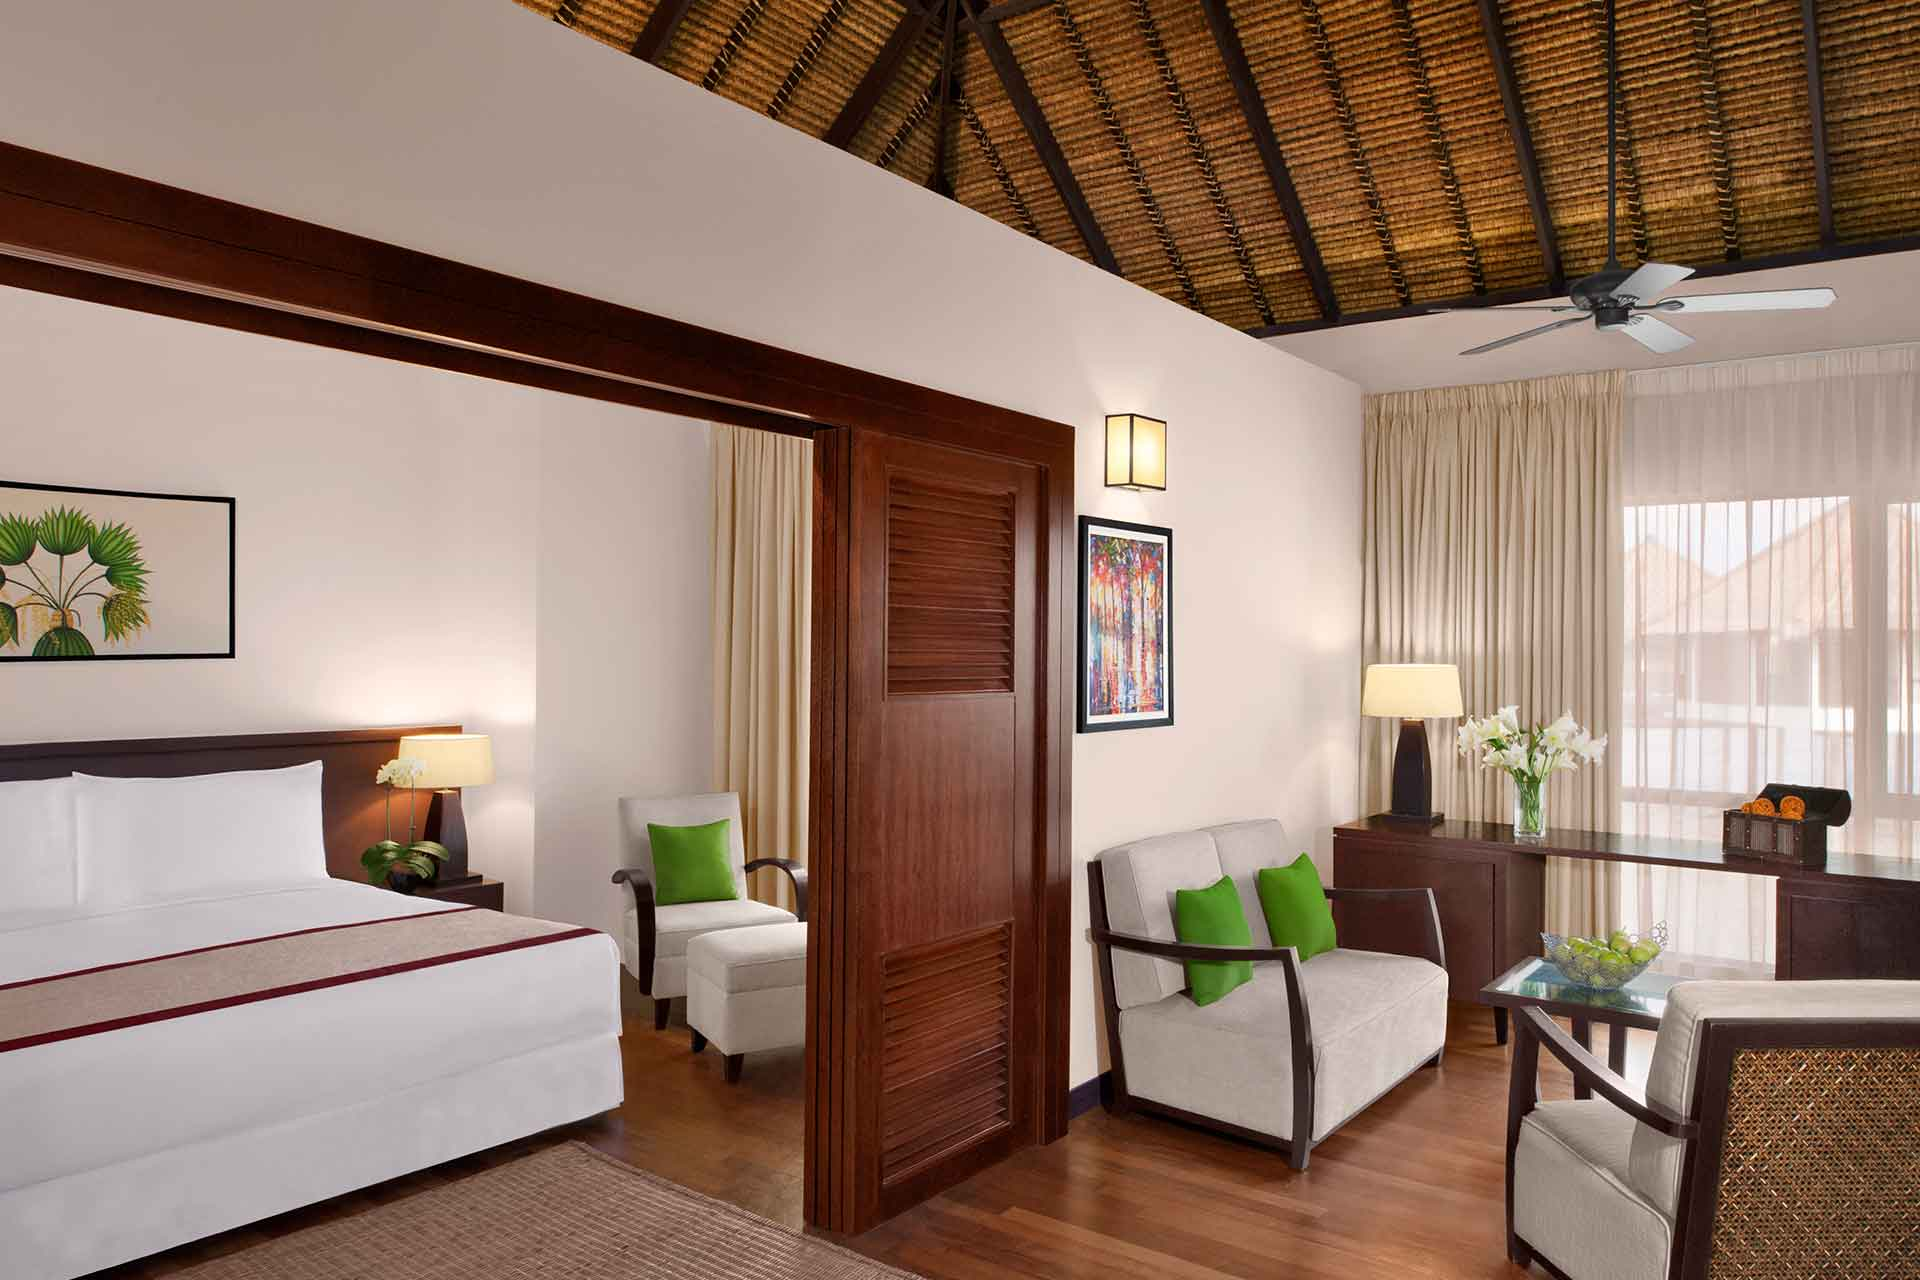 Interior of Family villa bedroom at AVANI Sepang